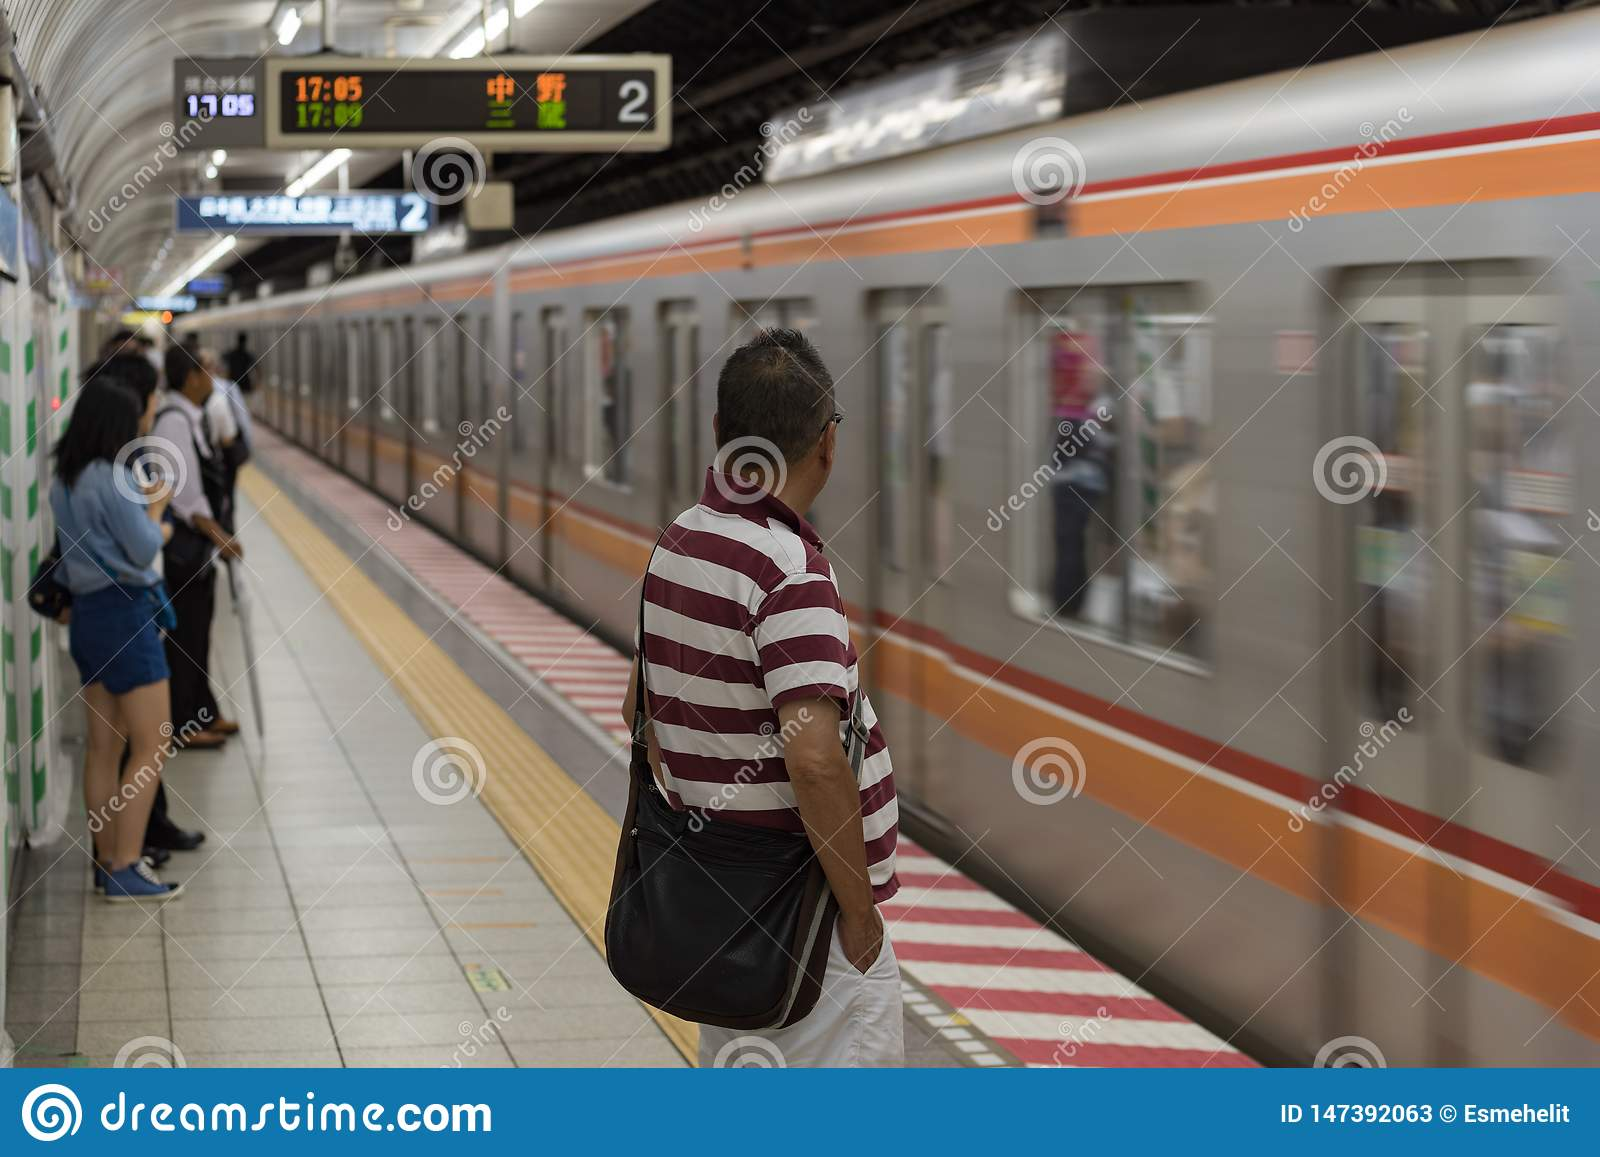 Train arriving at Tokyo Metro station with people waiting on the platform